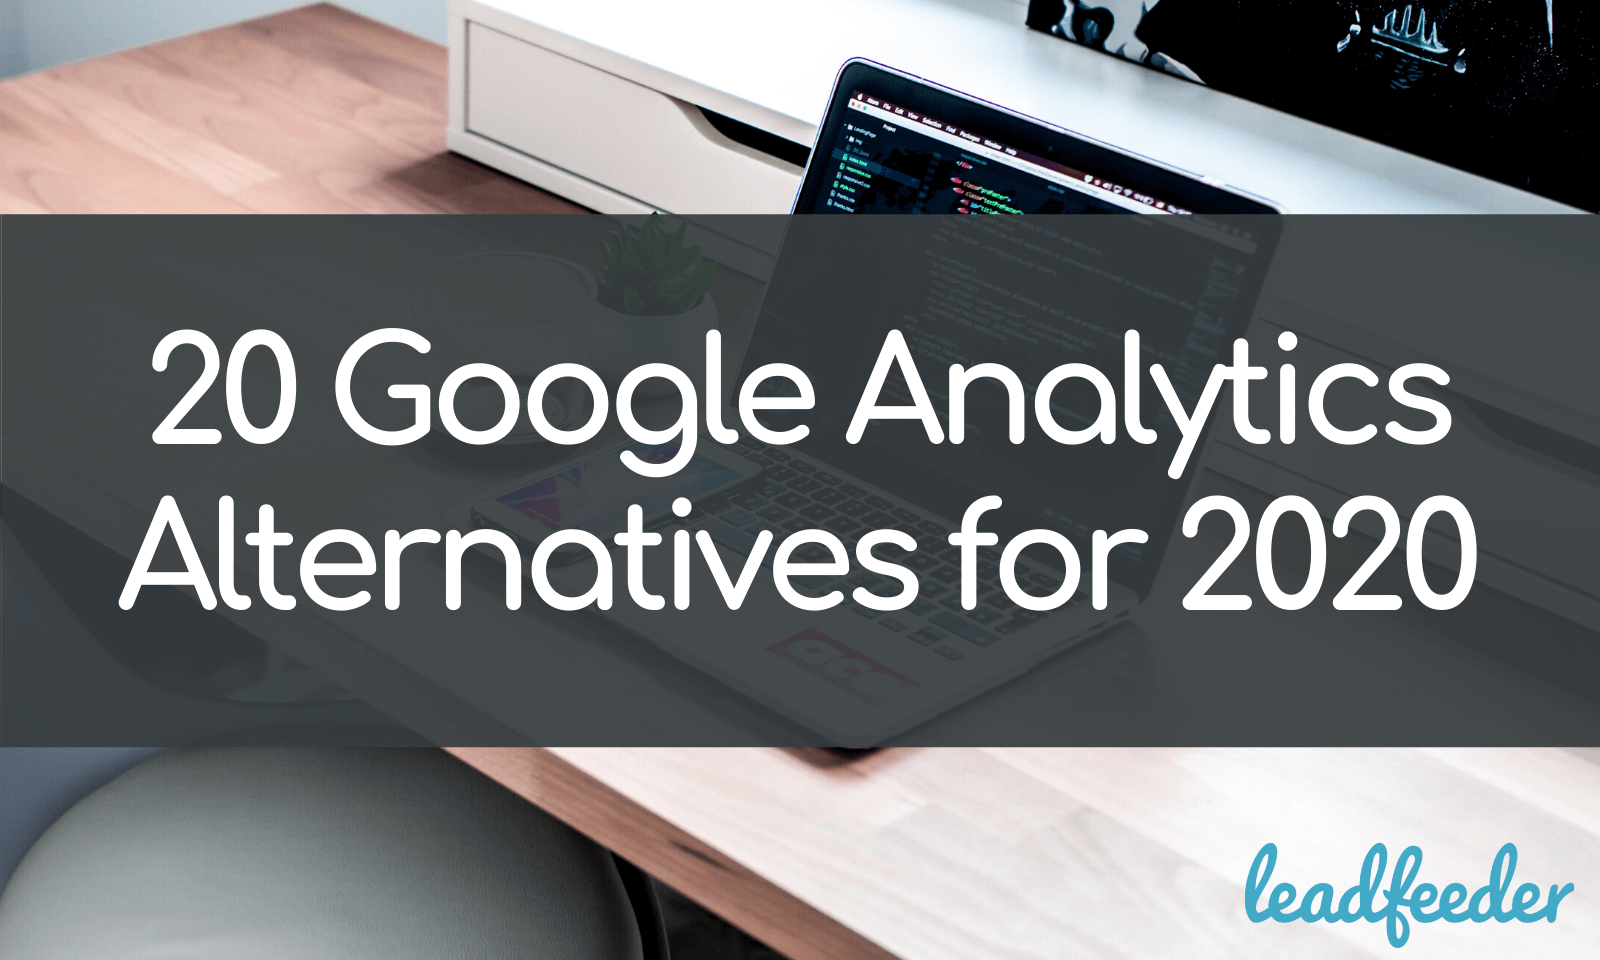 20 Google Analytics Alternatives for 2020